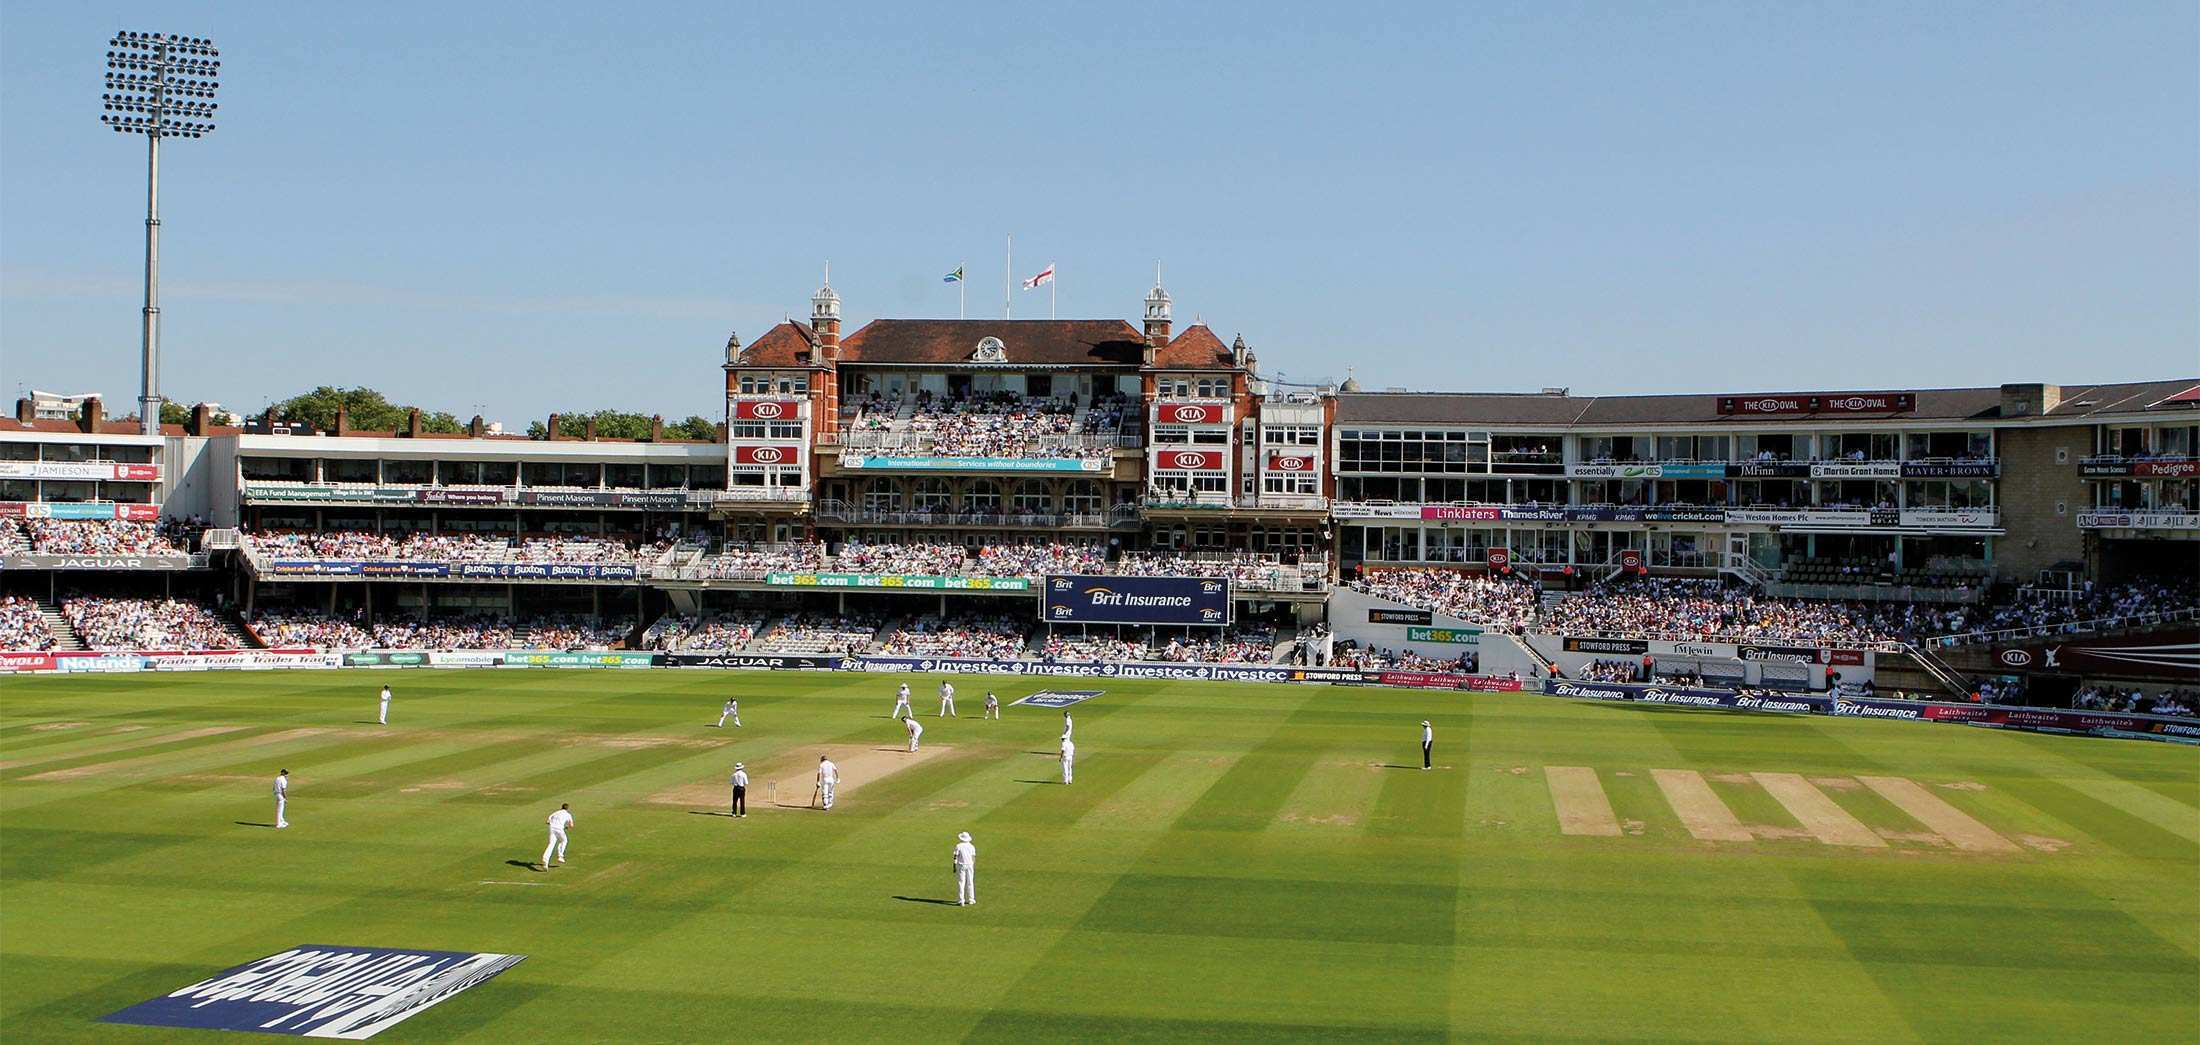 32 Concept of Kia Oval 2020 Tickets Pictures for Kia Oval 2020 Tickets